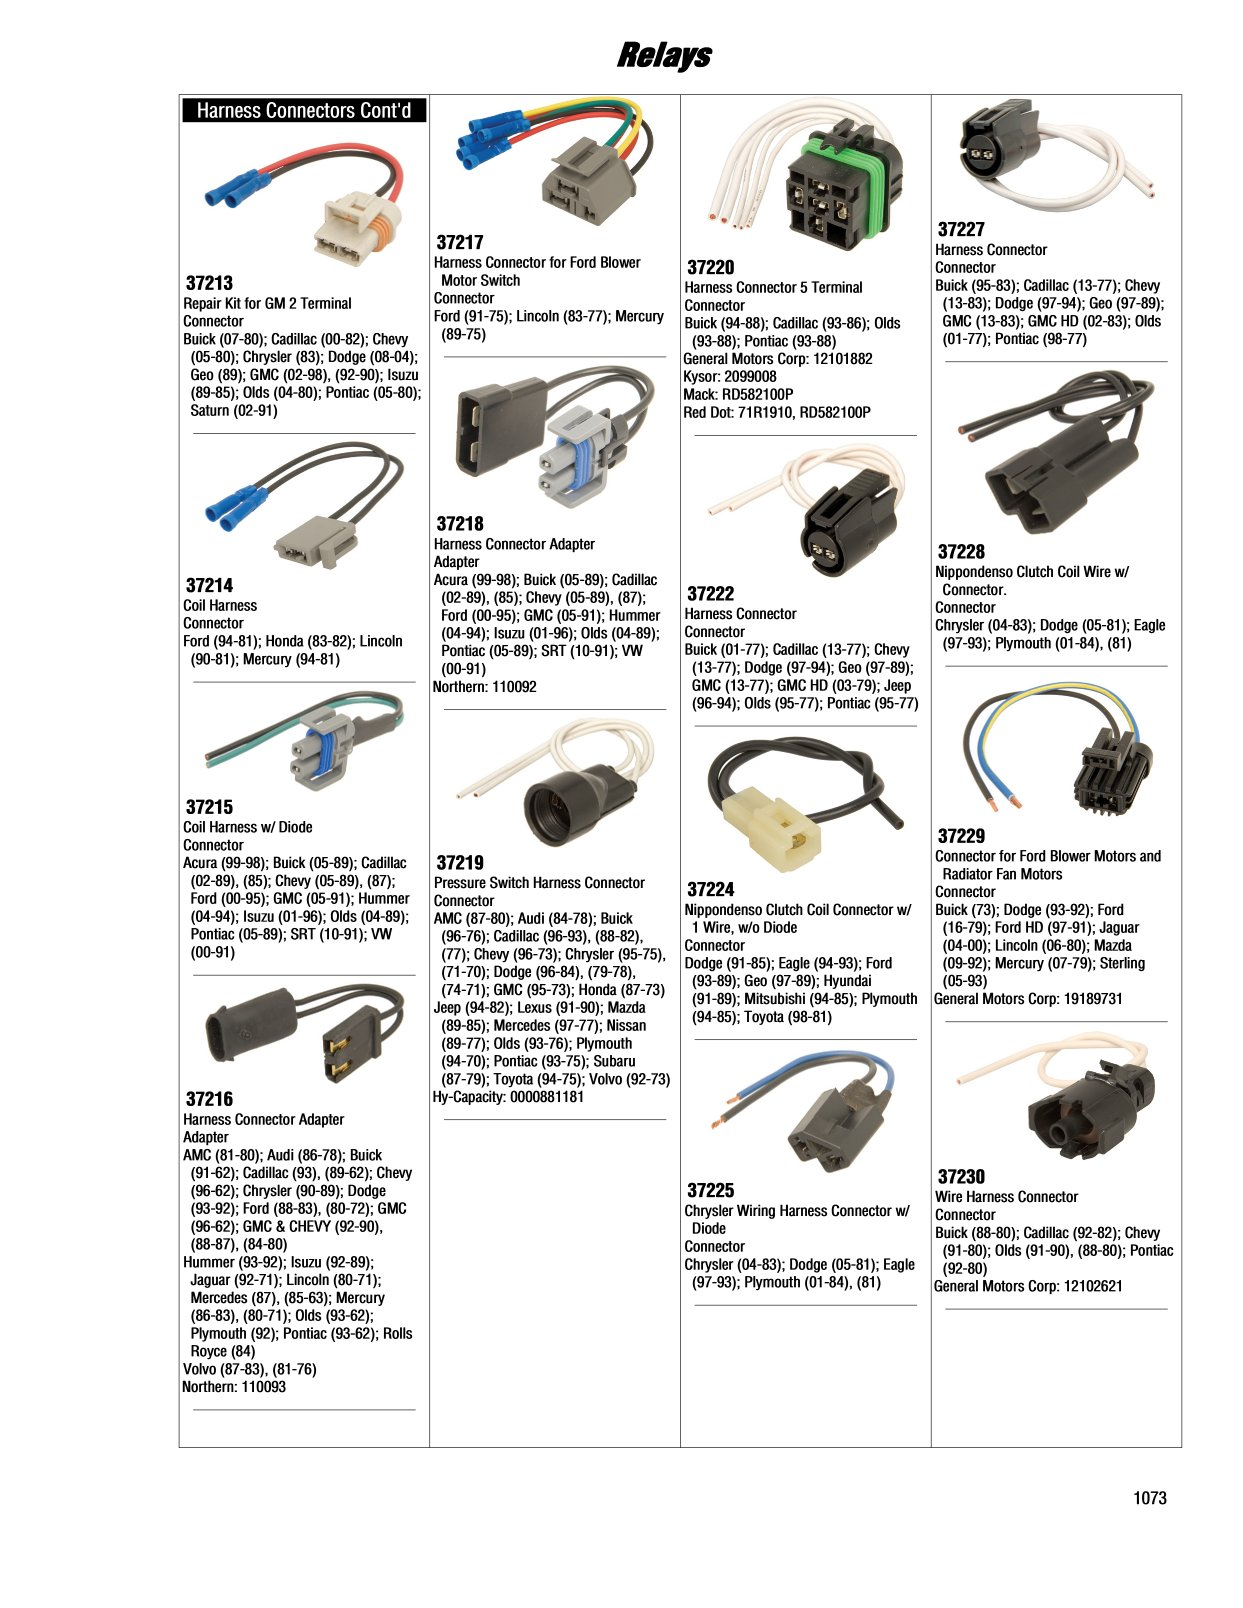 2017 Illustrated Guide Page 1073 Relays Vw Wiring Harness Terminals